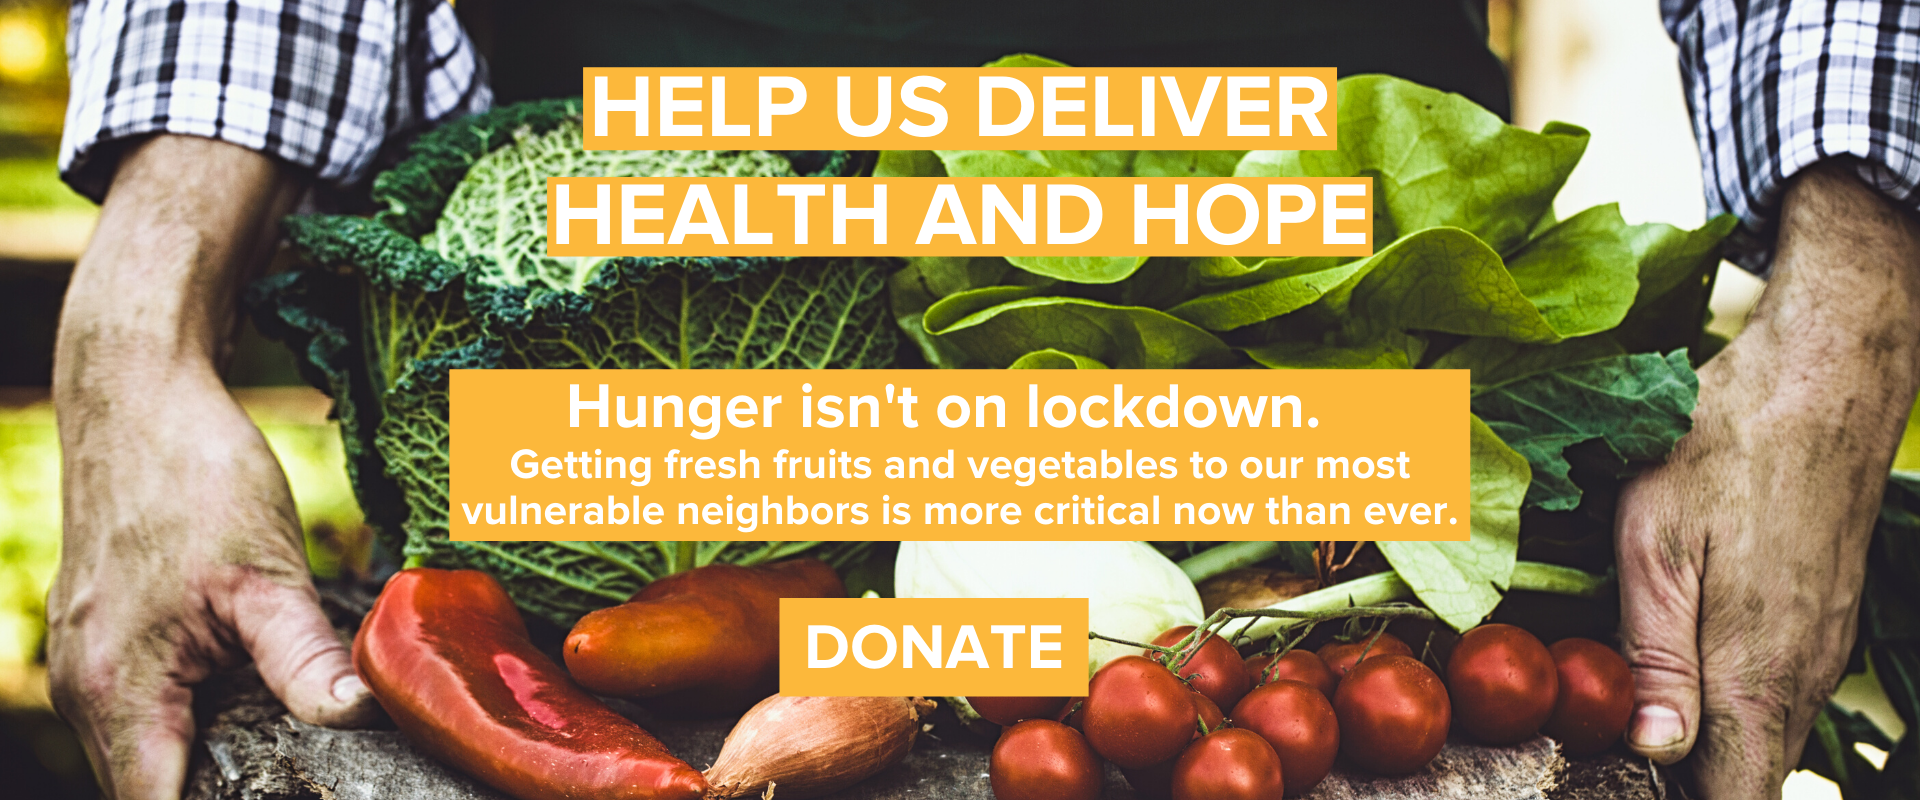 After the Harvest - Hunger isn't on lockdown